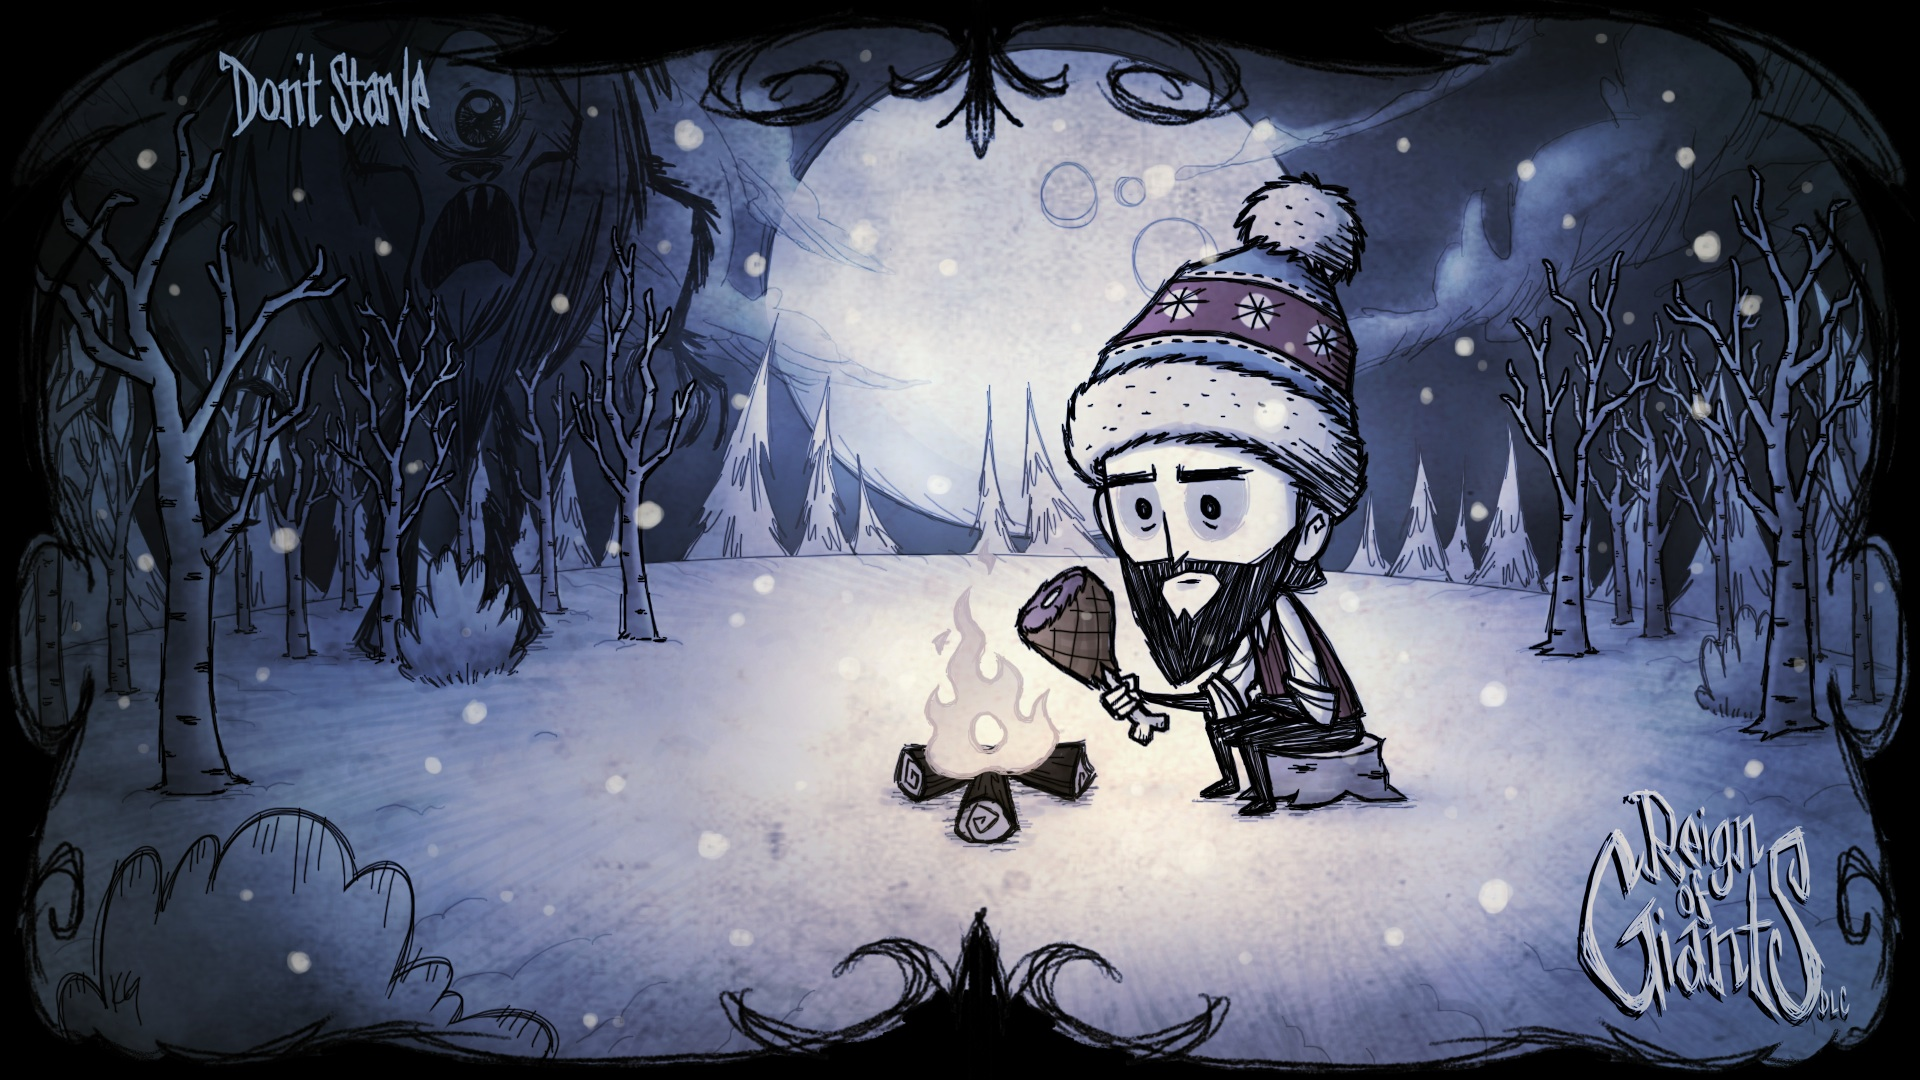 http://img3.wikia.nocookie.net/__cb20140216134041/dont-starve-game/images/0/02/Winter_RoG_poster.jpg